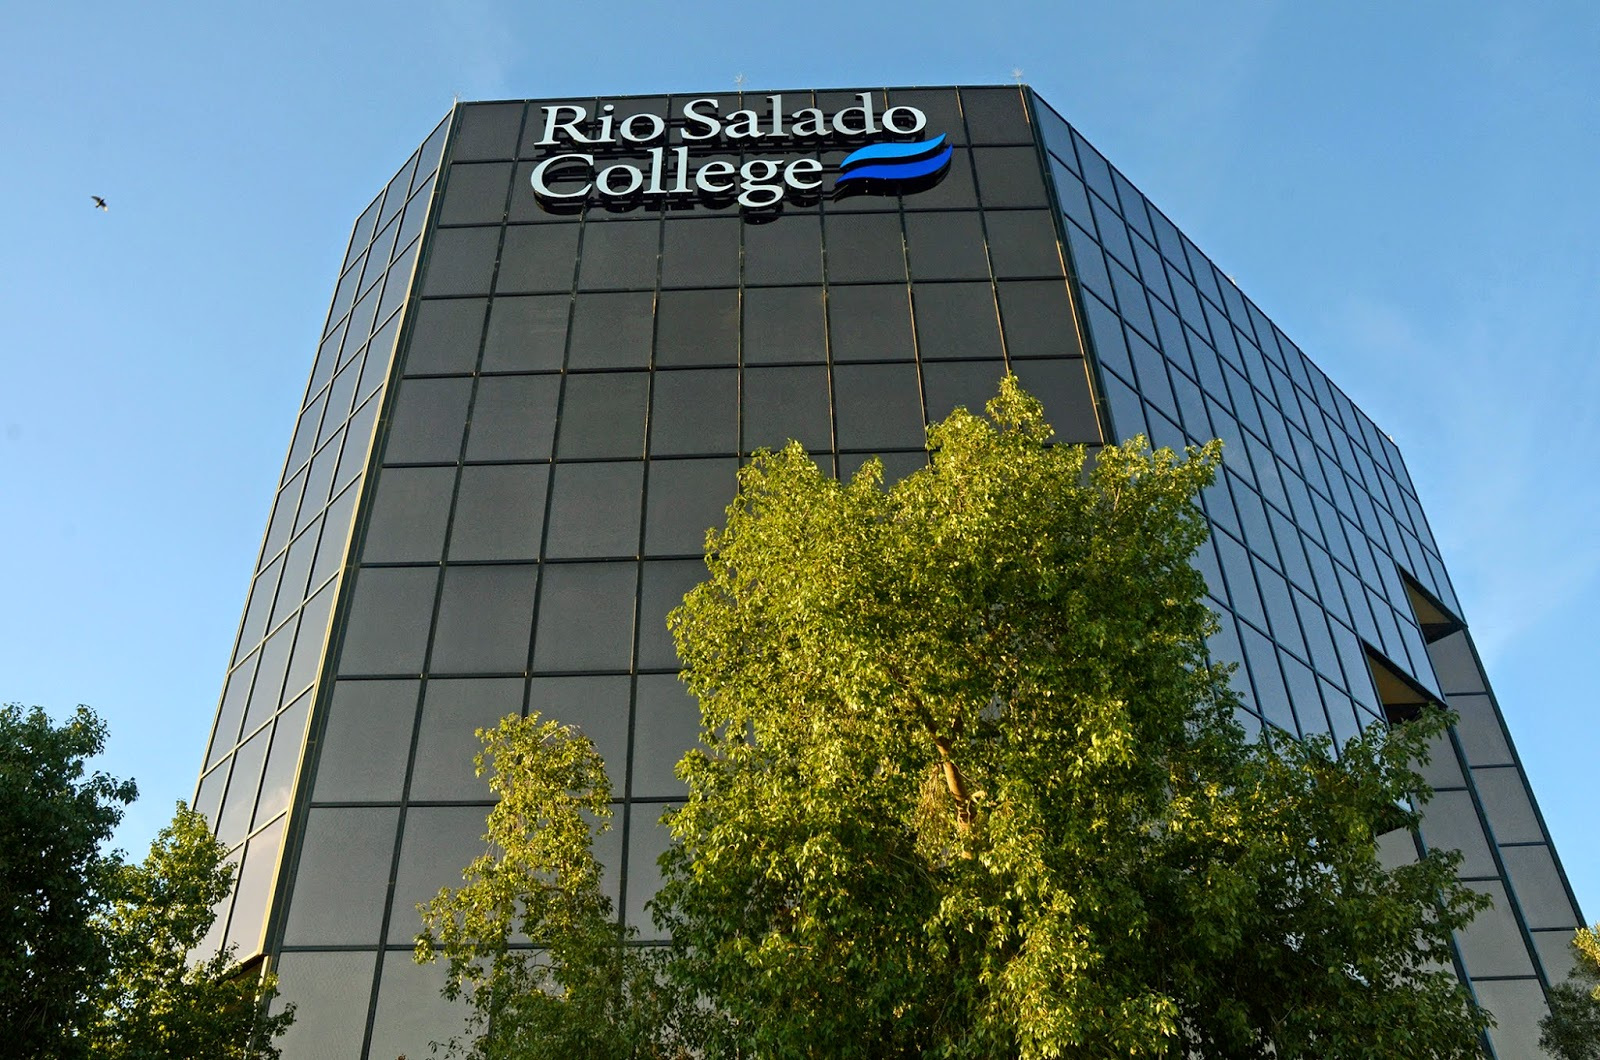 image of Rio Salado Tower in Tempe